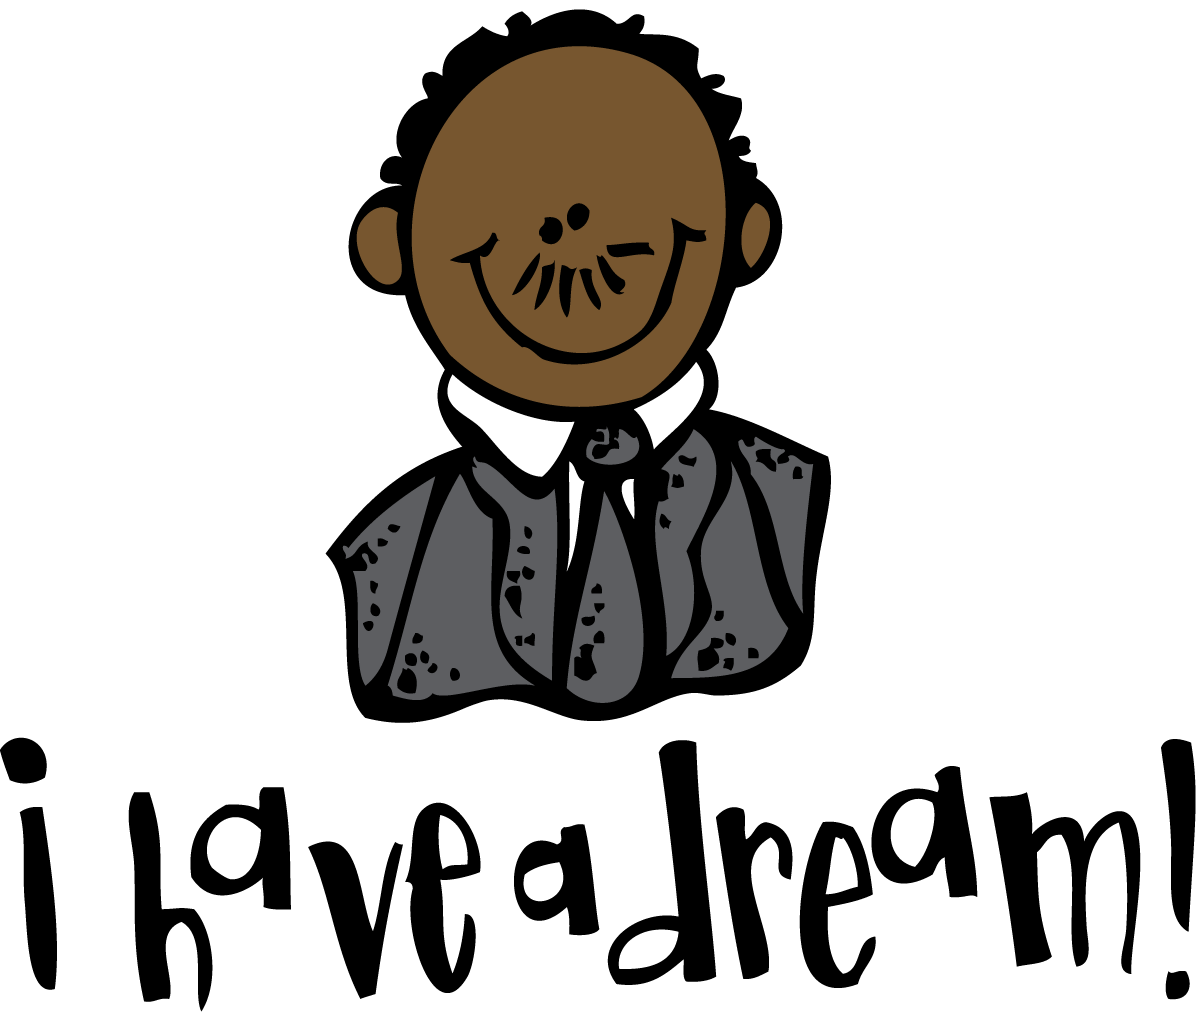 Clipart martin luther king clipart images gallery for free download.